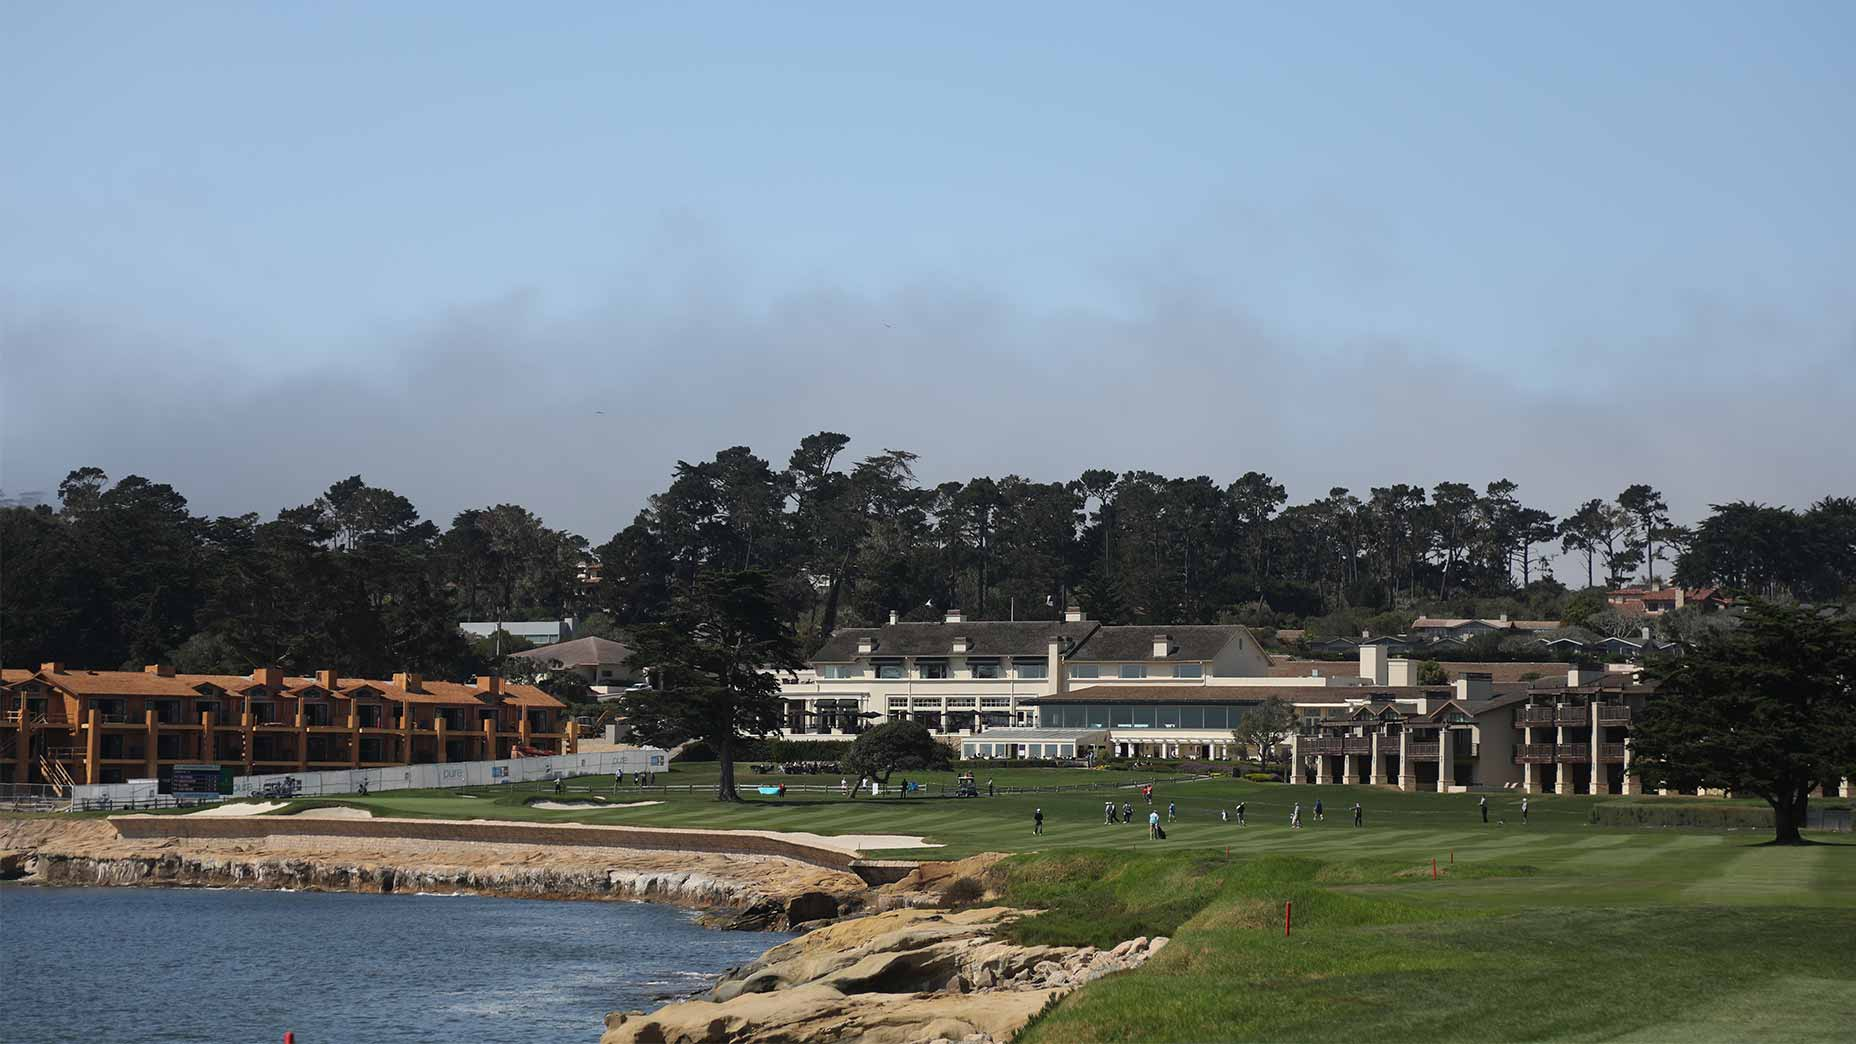 pebble beach 18th hole scenic